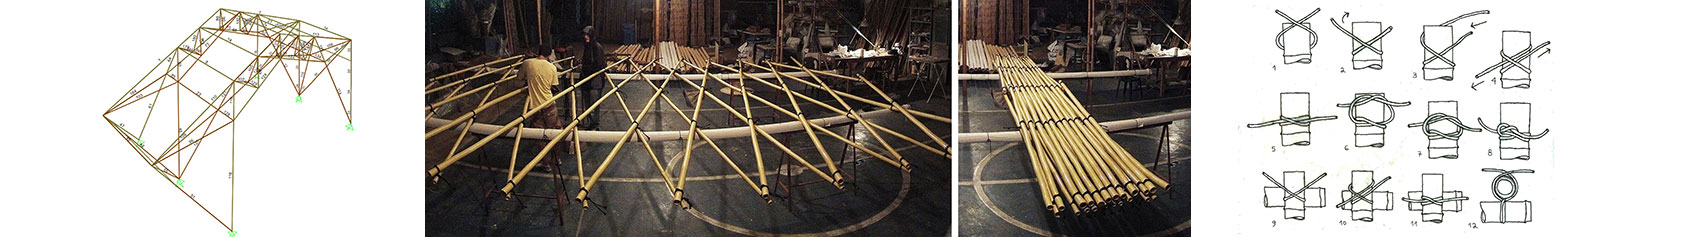 Prefabricated-bamboo-and-textile-pavilion-Journal-of-the-International-Association-for-Shell-and-Spatial-Structures.jpg